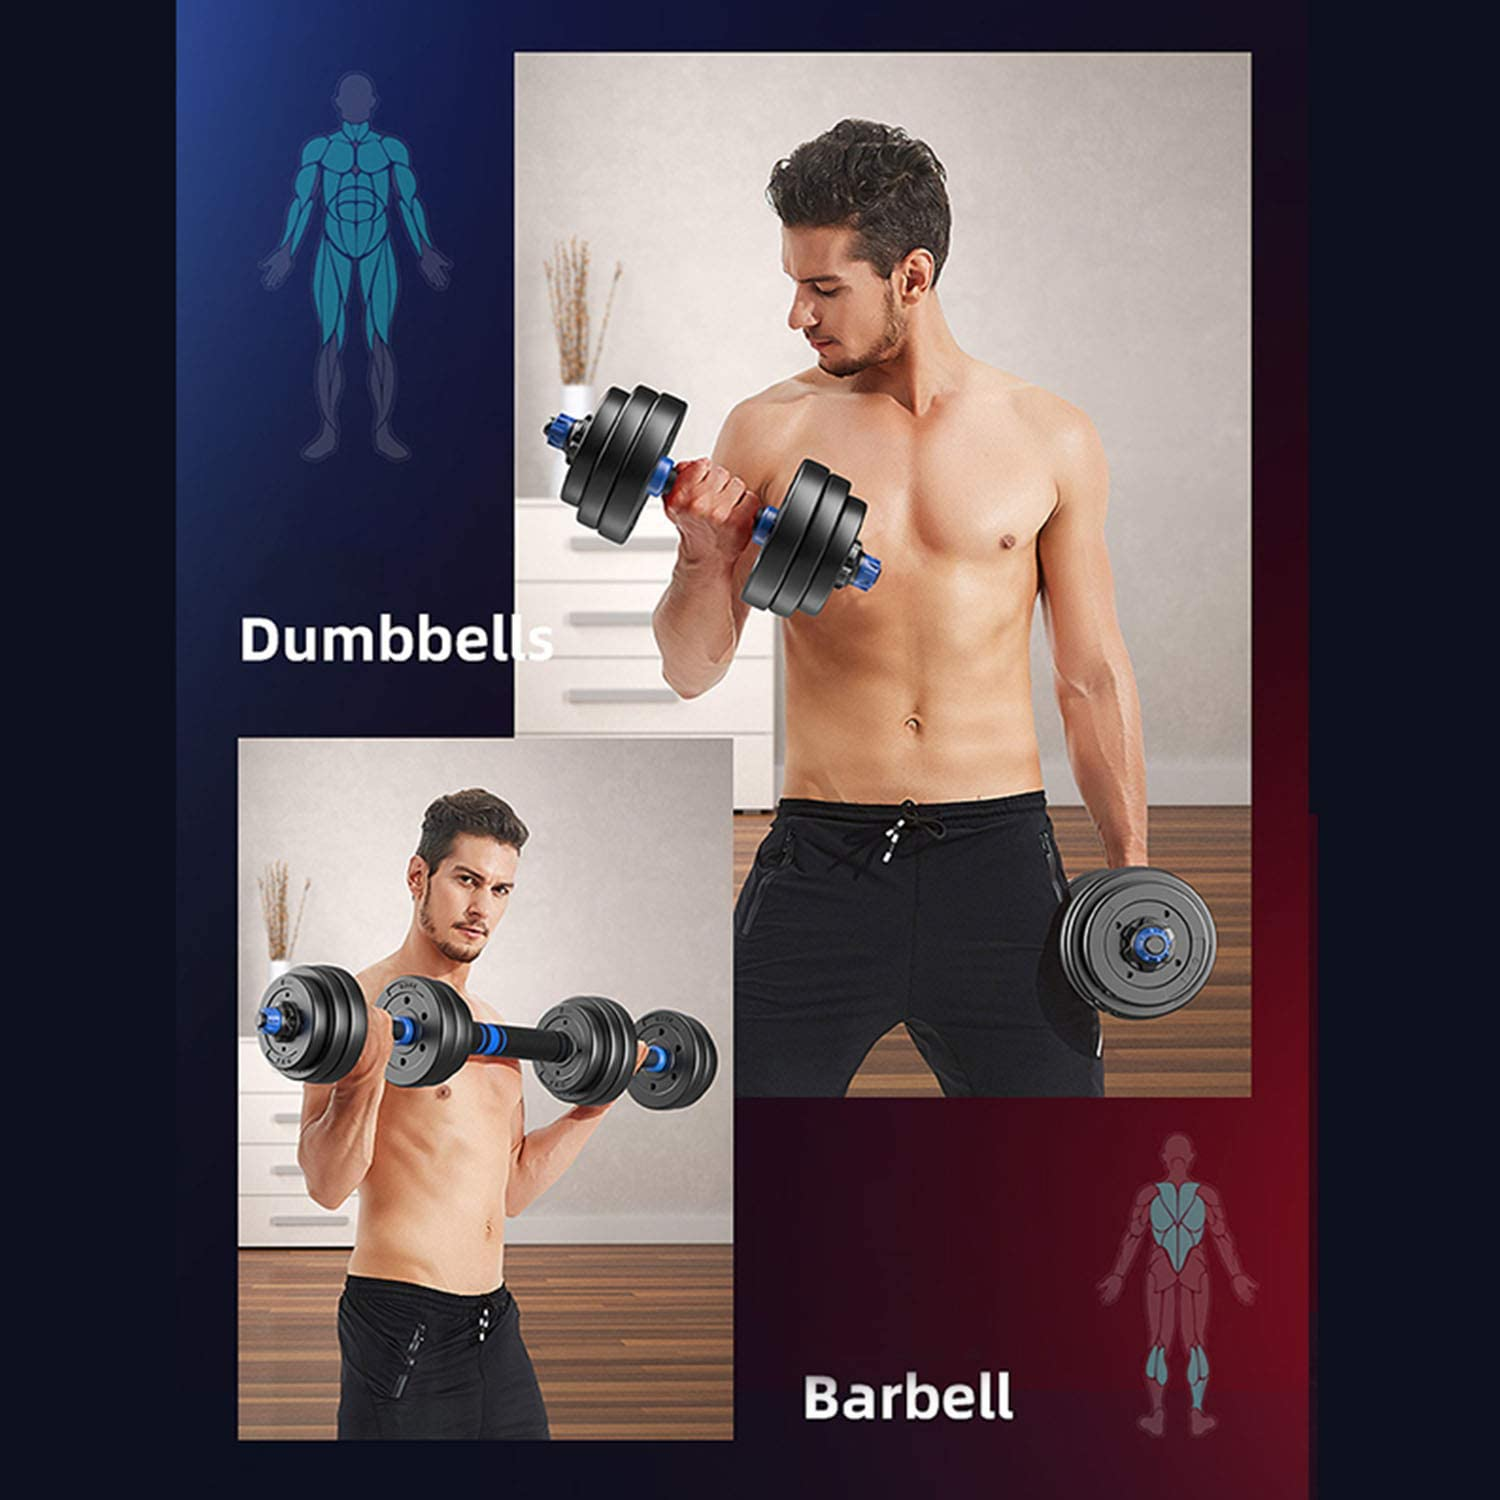 Fitness Dumbbells Set Free Weights Adjustable Weight to 20-80lbs Home Fitness Equipment for Men and Women Gym Dumbbell Sets 30,40,60,80lbs Suit